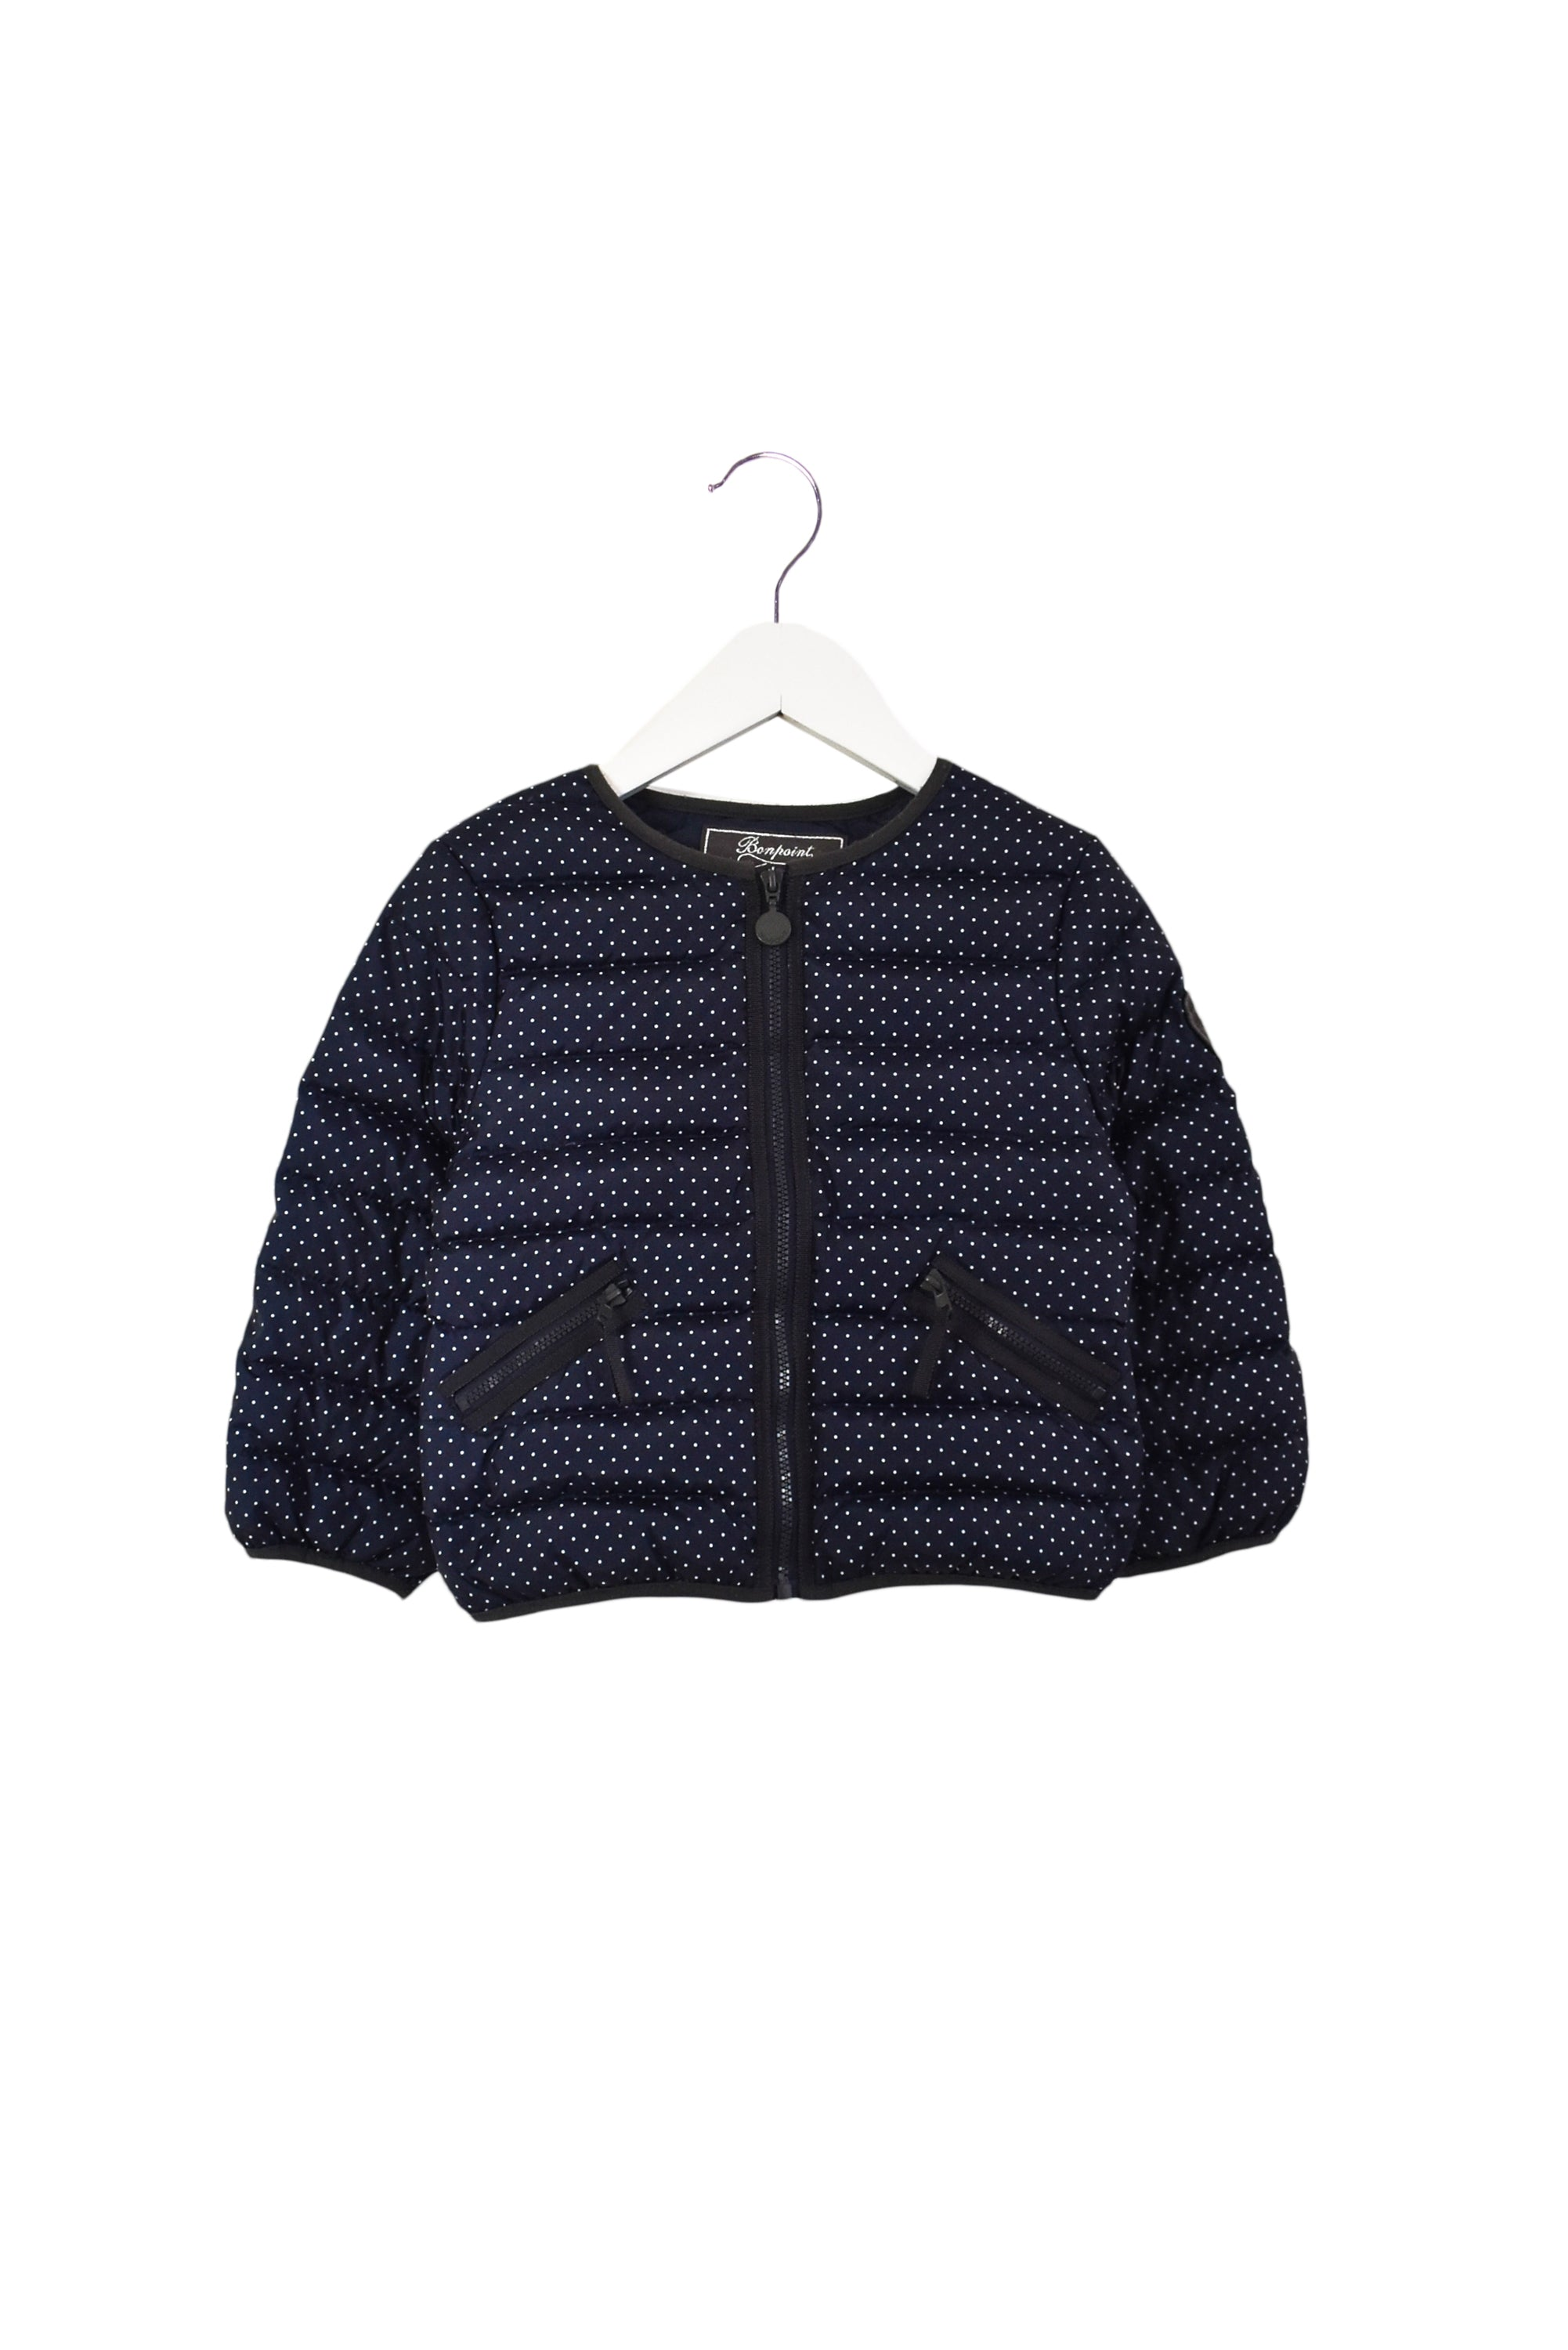 10013253 Bonpoint Kids~Puffer Jacket 3T at Retykle